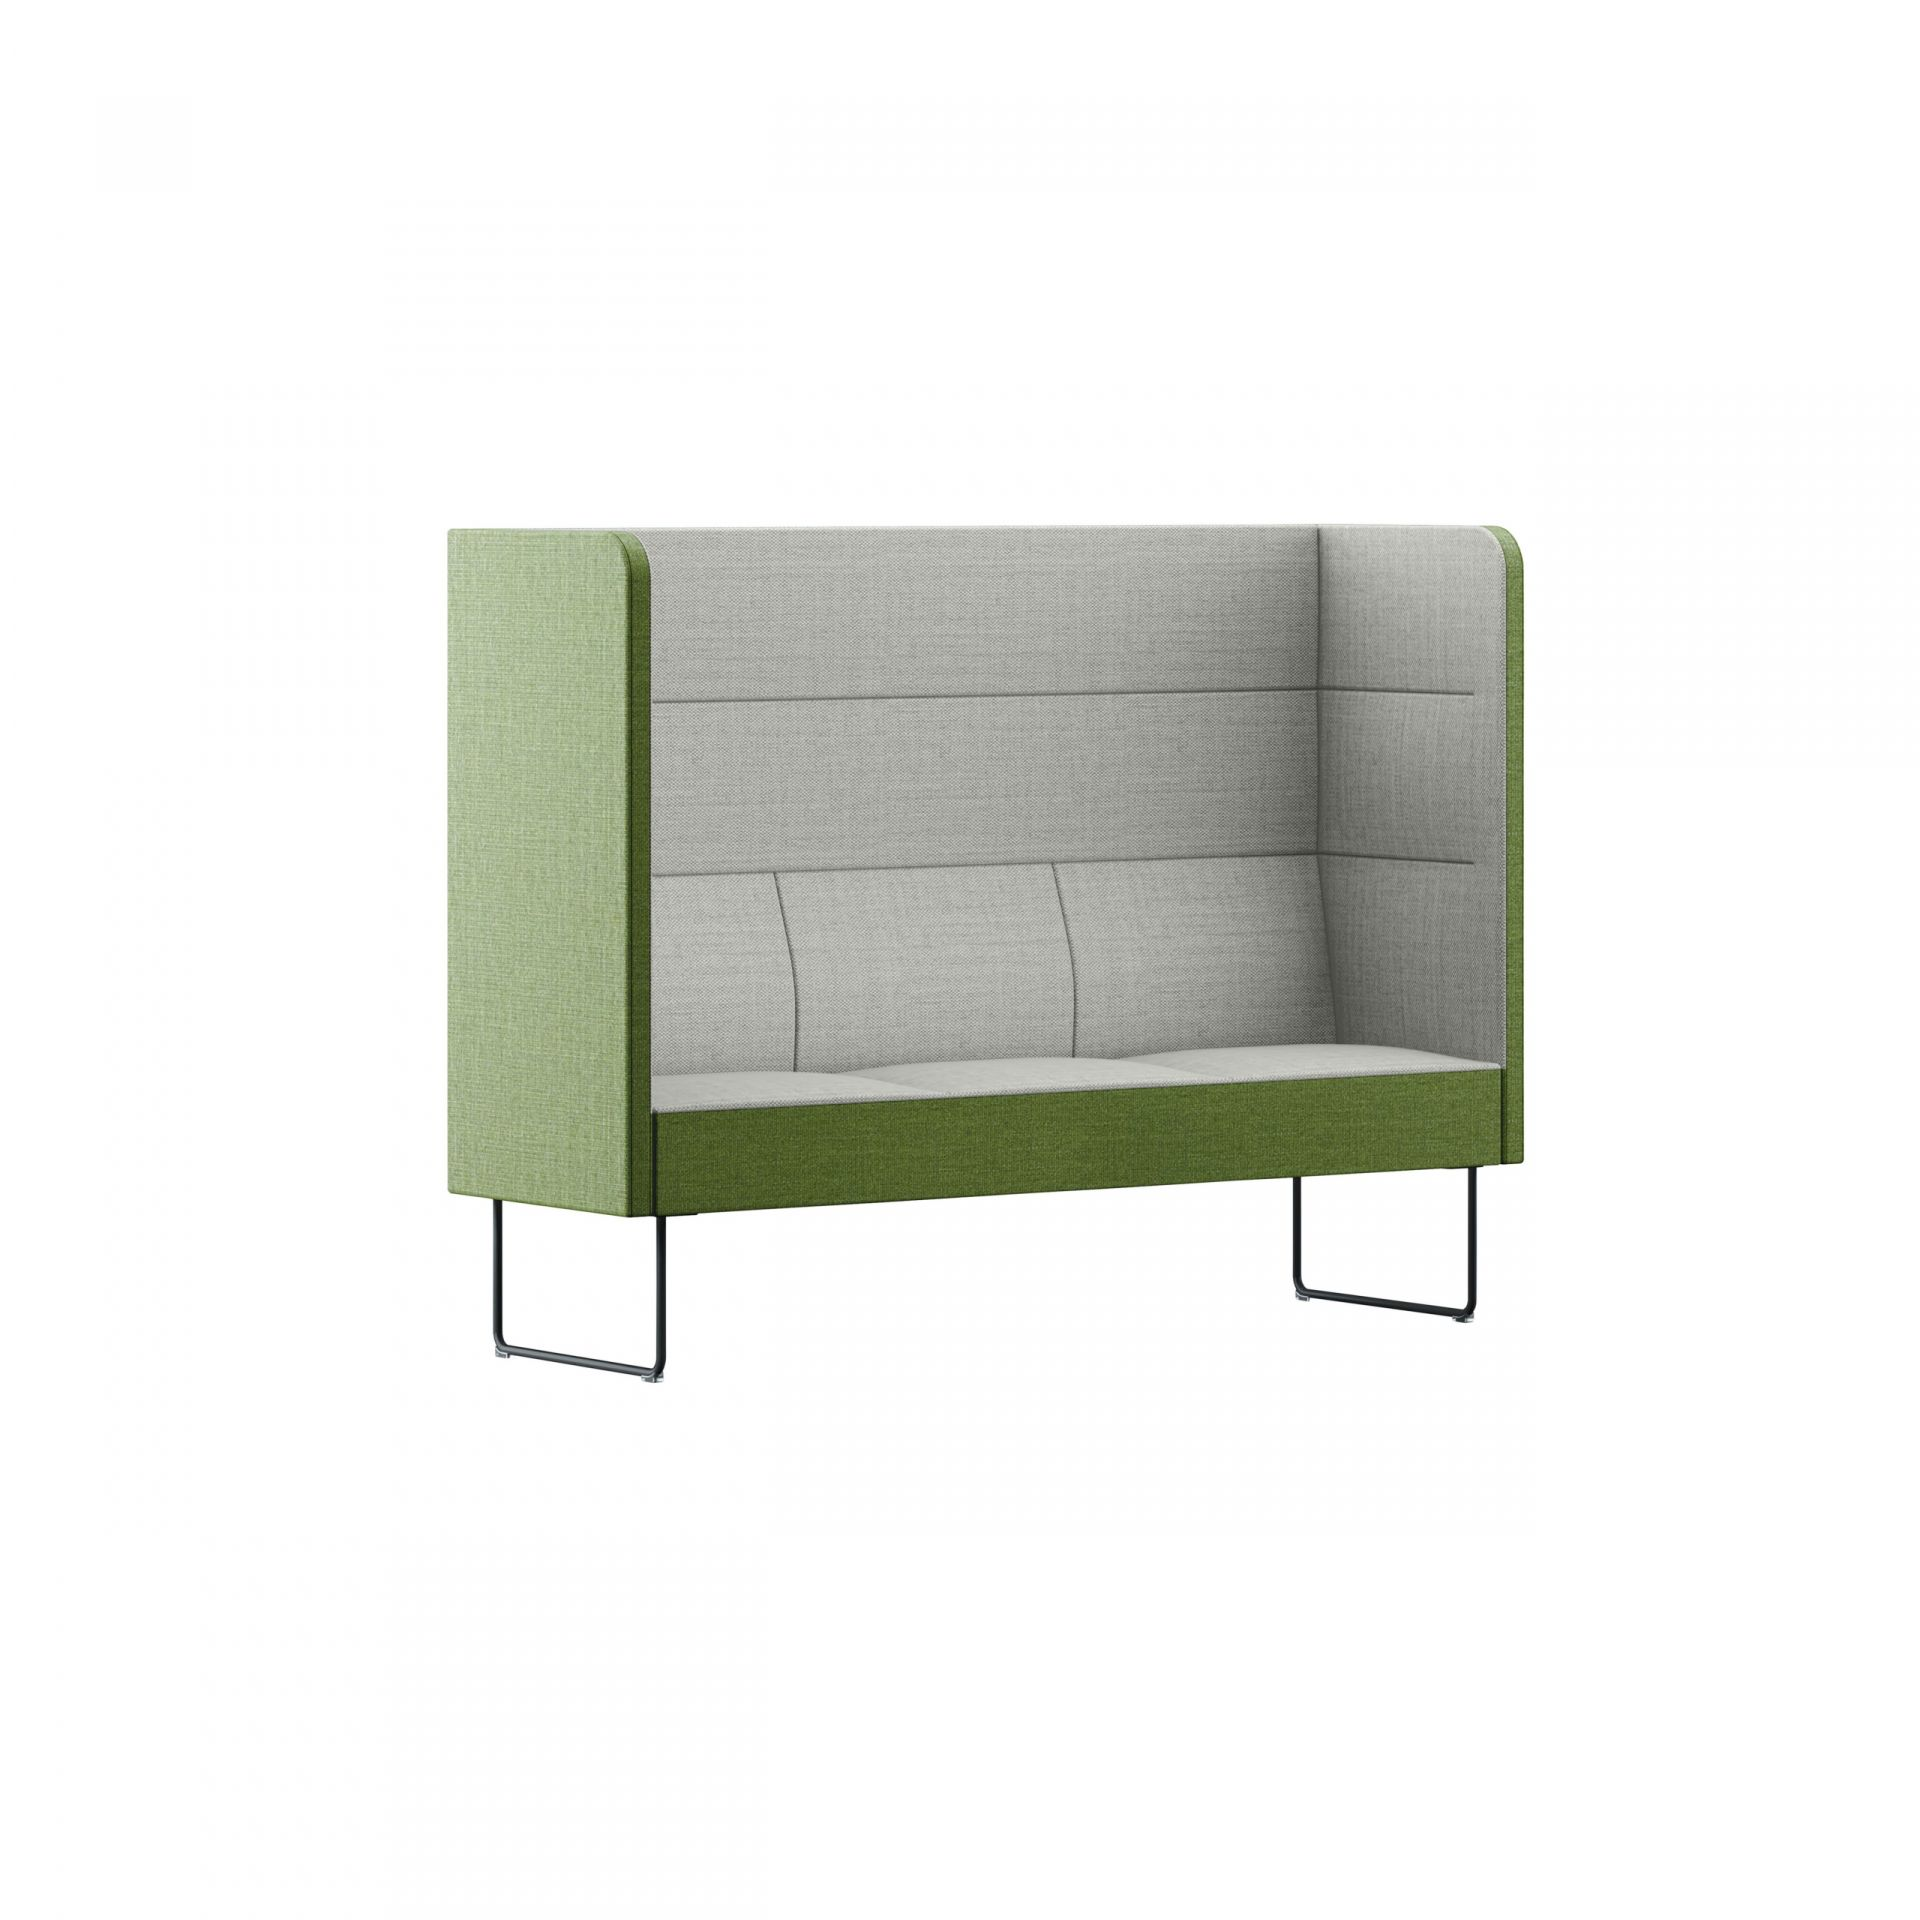 Mingle Sofa product image 6